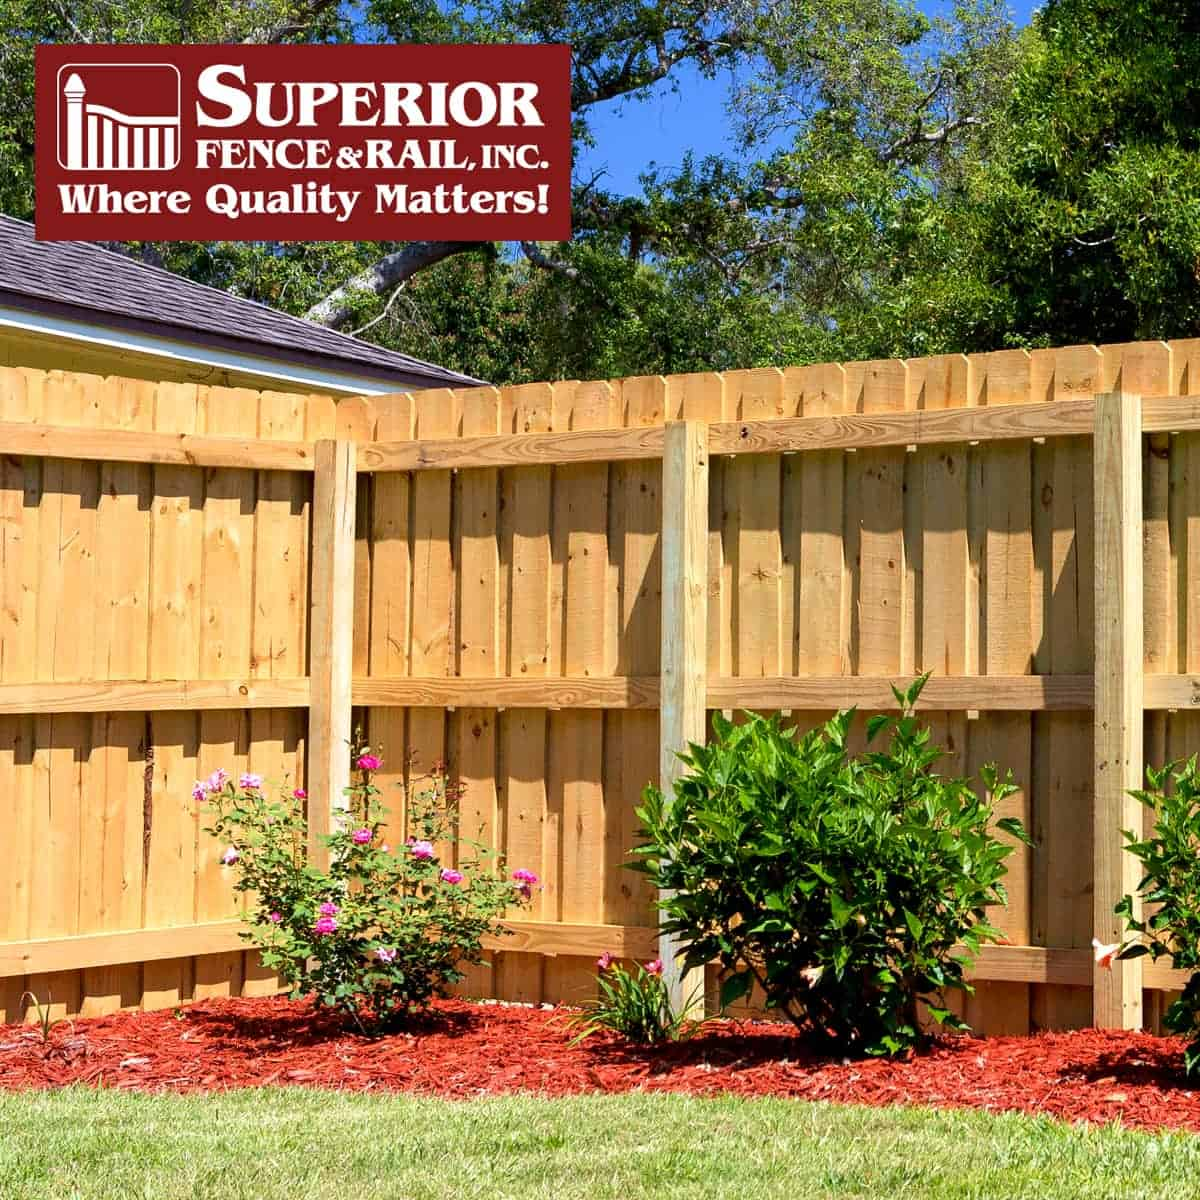 Venice fence company contractor